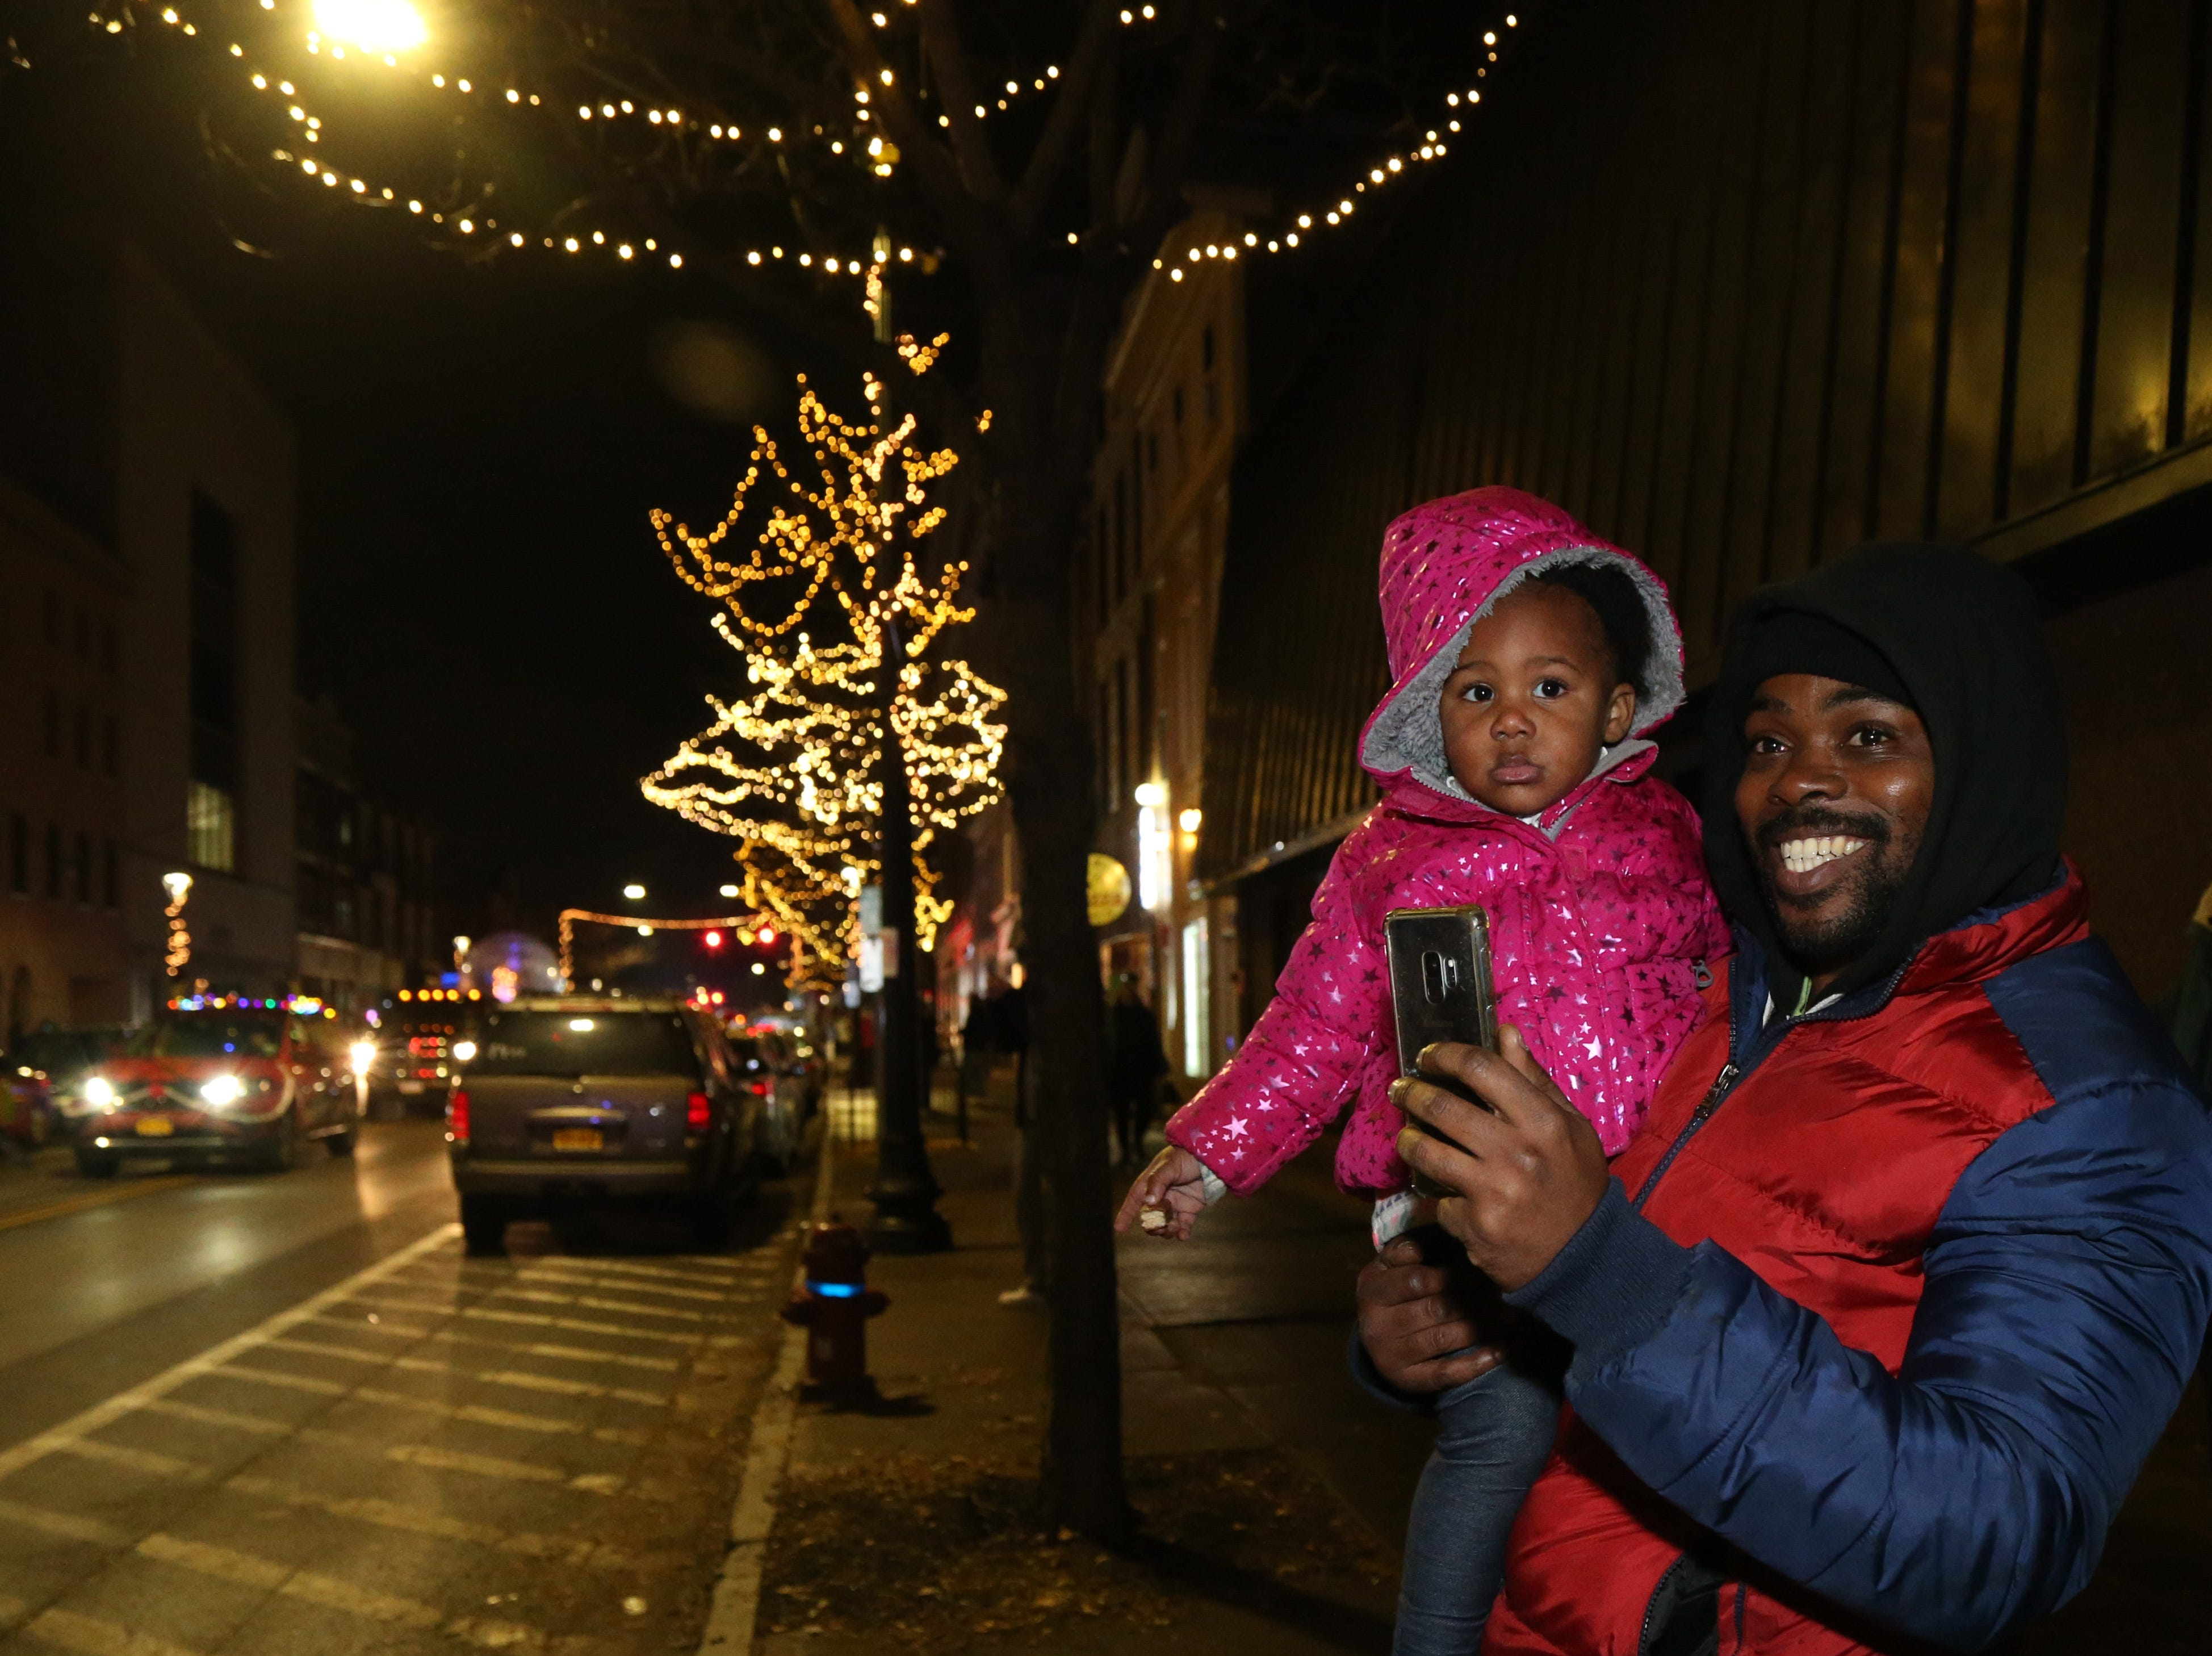 Rahman Moore and his daughter Kleio take in the Celebration of Lights in the City of Poughkeepsie on November 30, 2018.